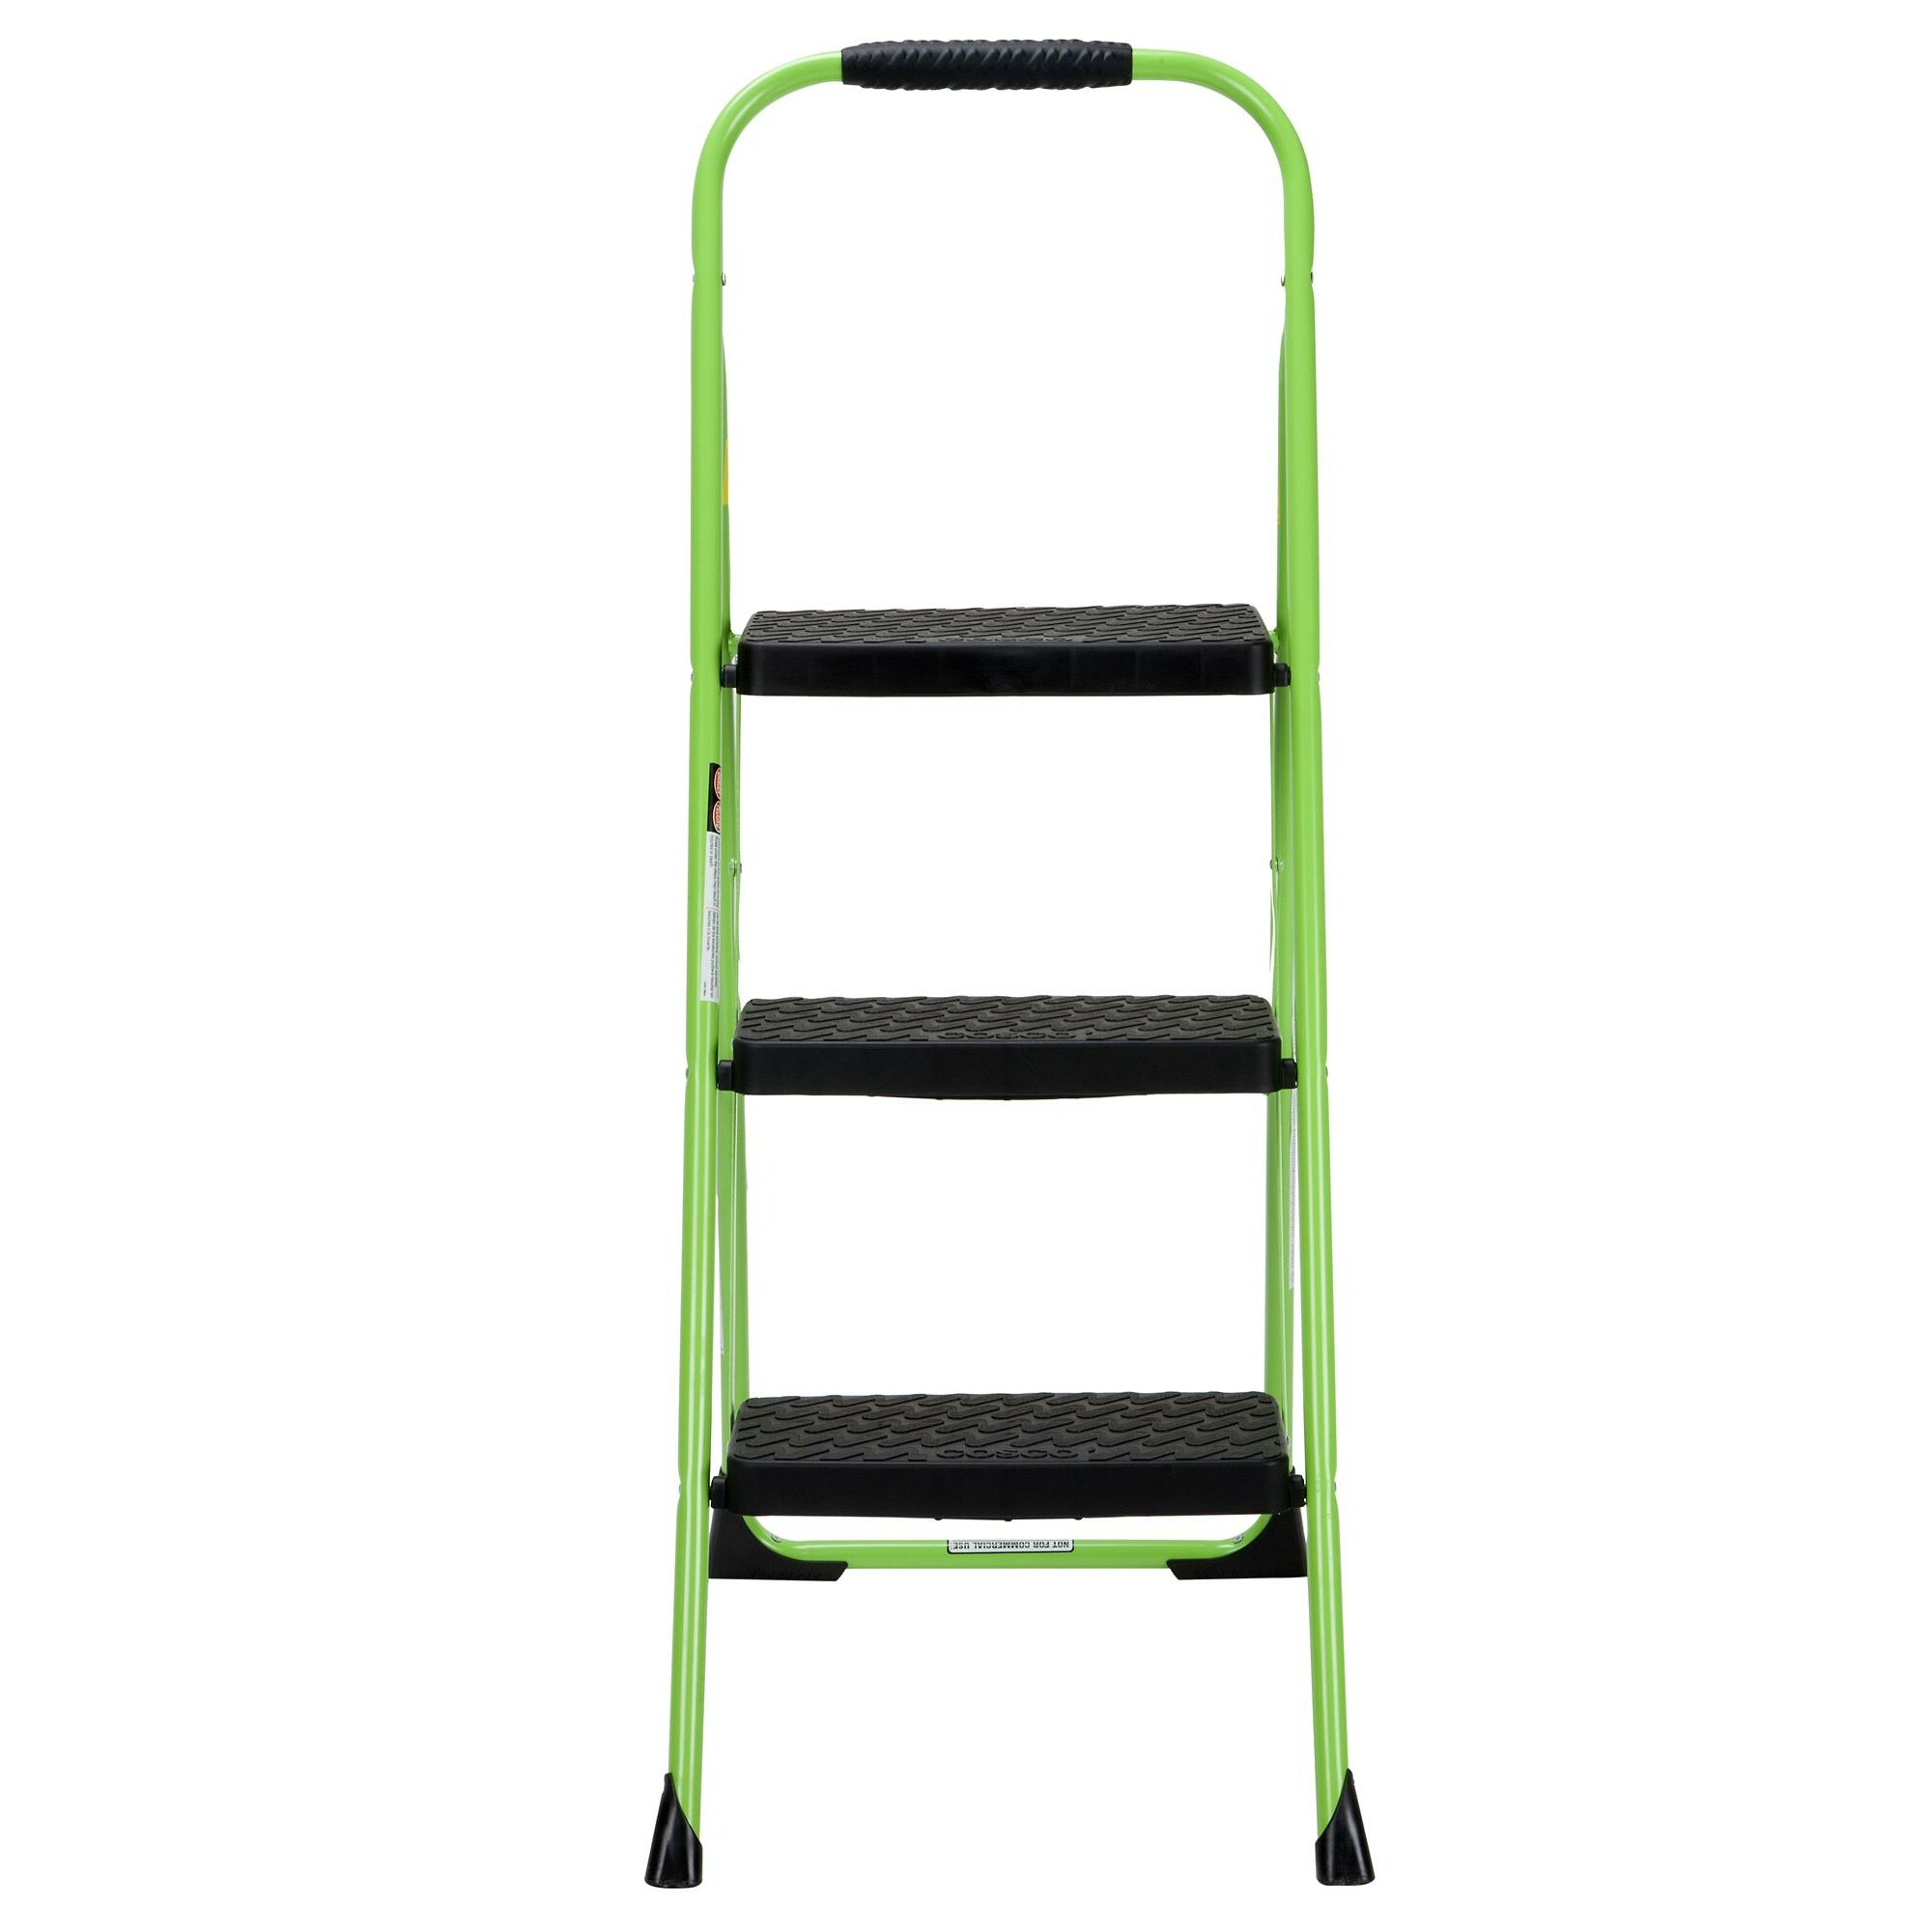 Cosco Home And Office 3 Step Big Step Folding Step Stool